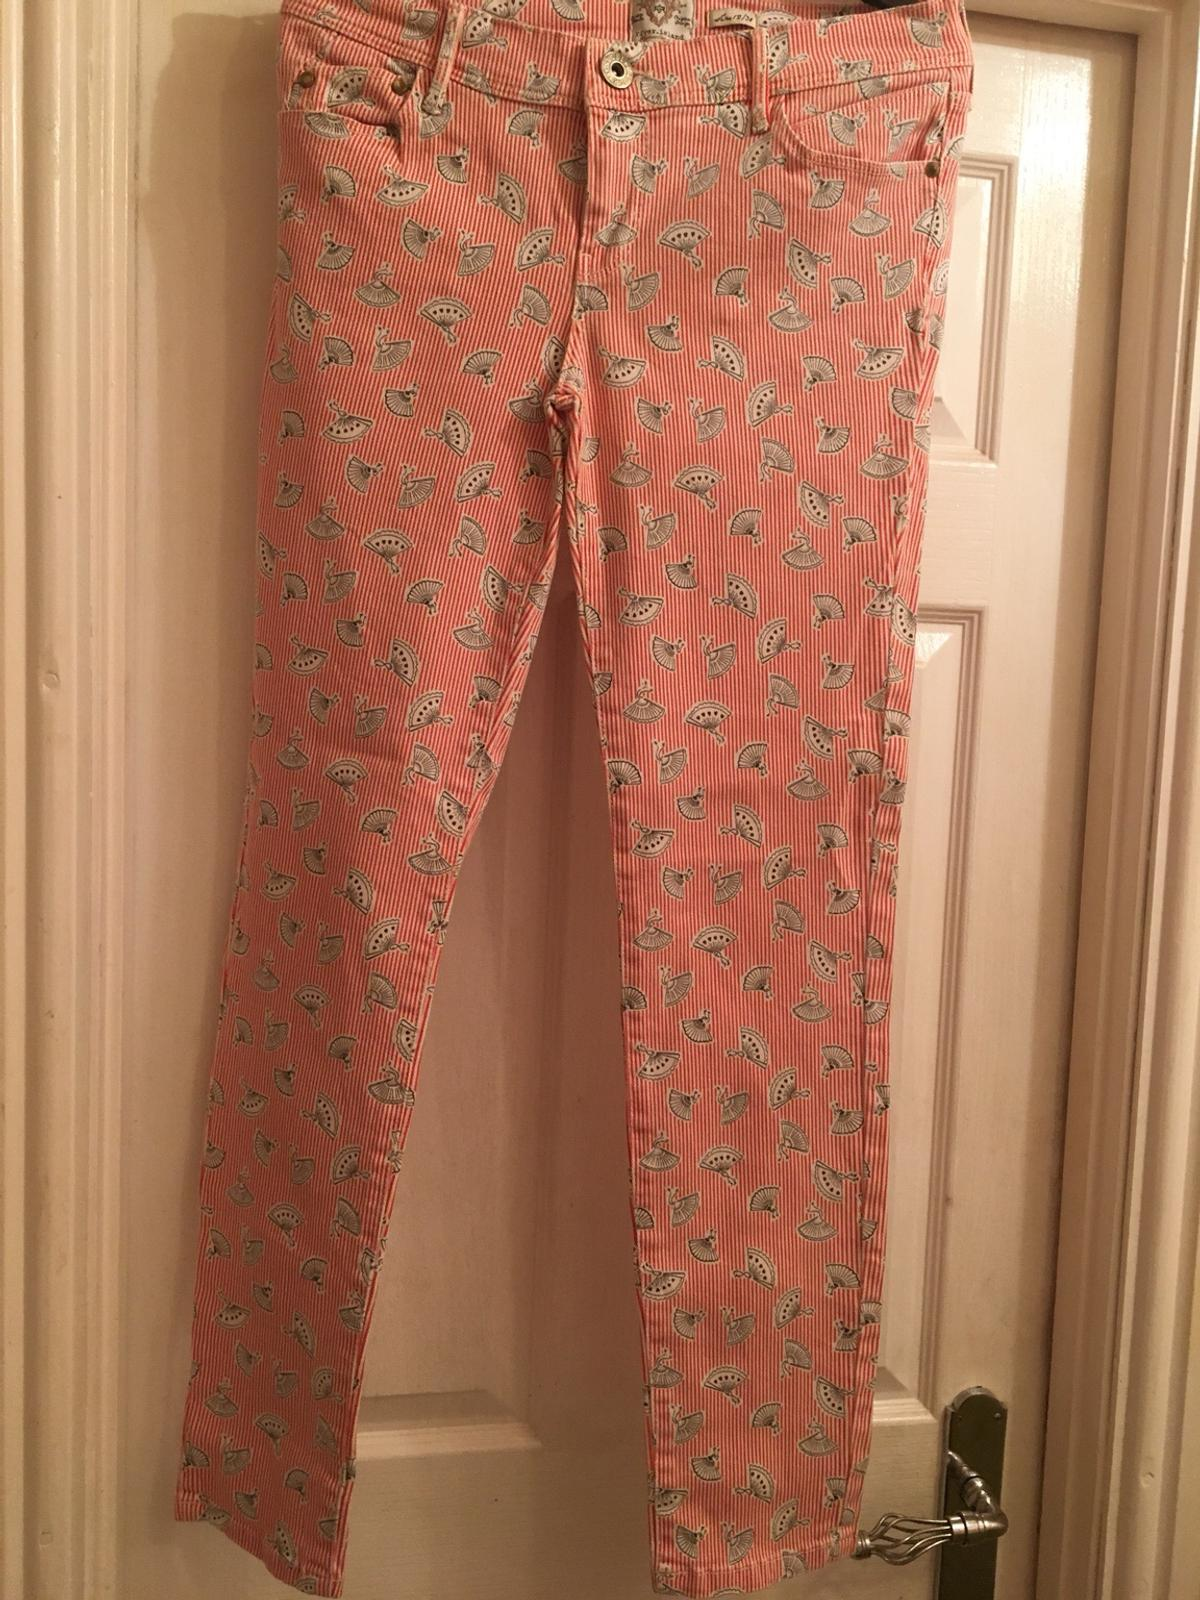 9fb4704d0aae River island skinny jeans size 12 in WA11 Helens for £7.00 for sale - Shpock